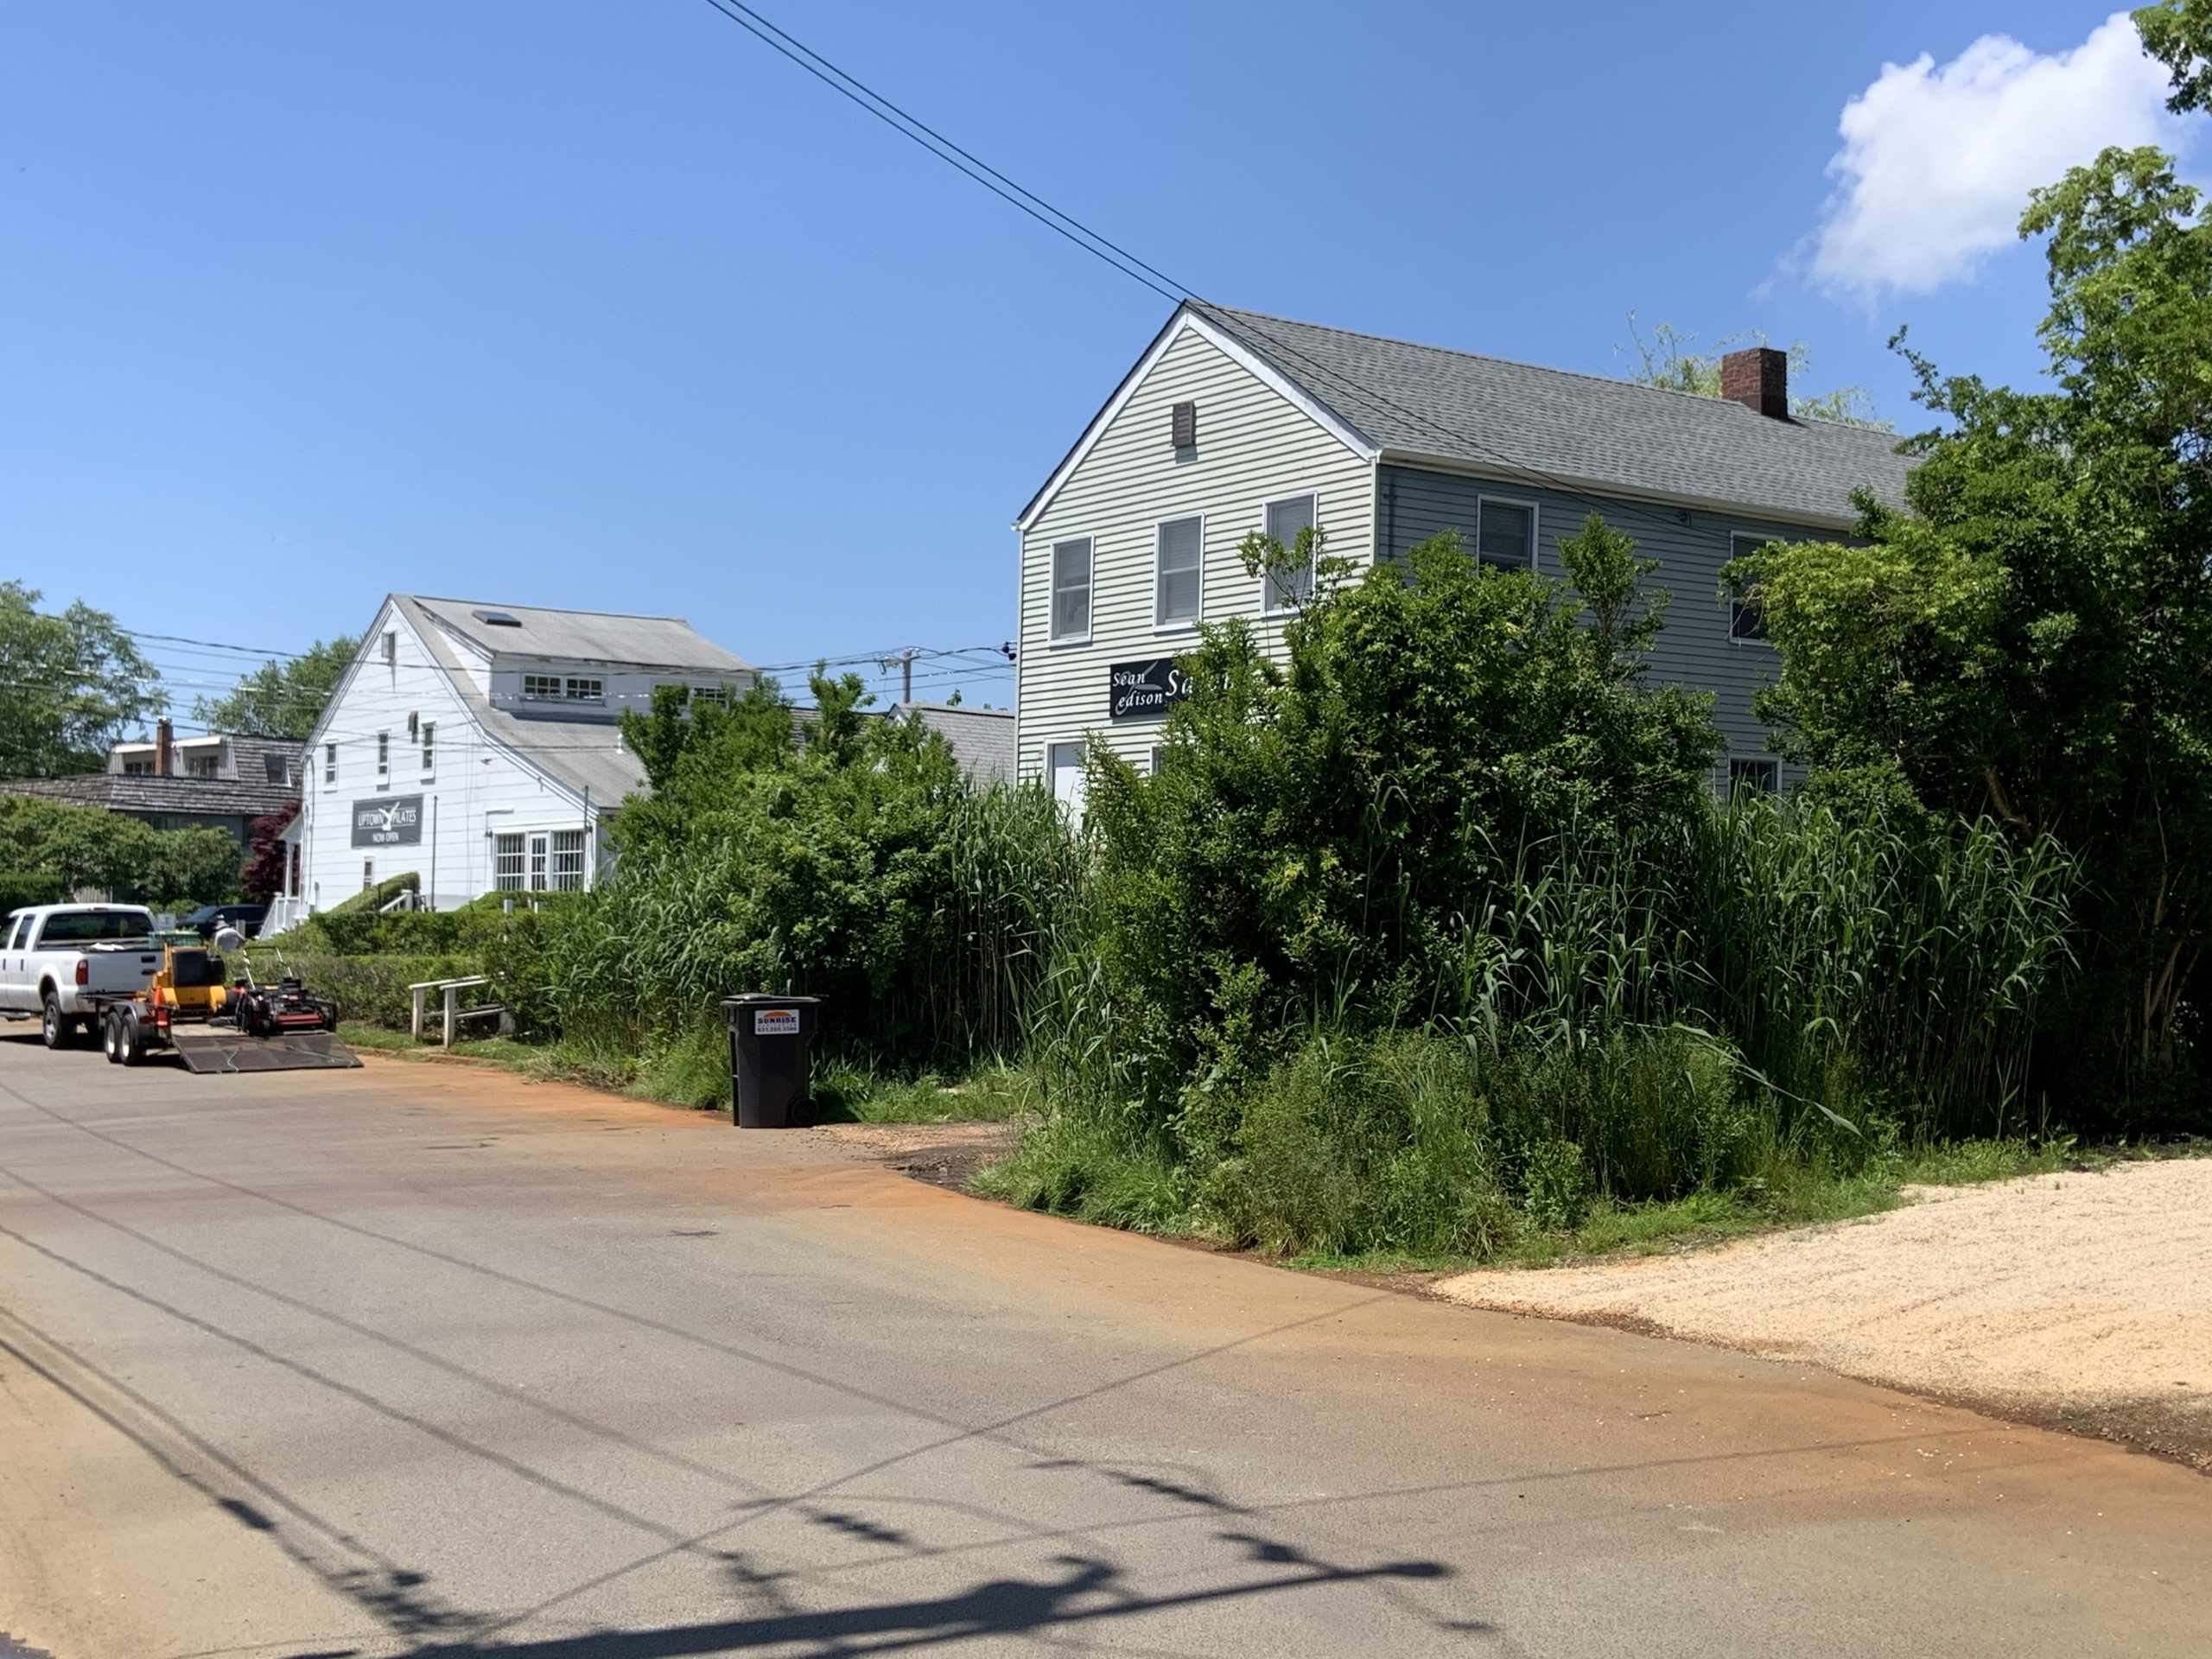 Most of the property in the Office District, including these buildings on low-lying Rose Street, will be dropped from the area being considered for rezone in a Waterfront Overlay District in Sag Harbor. STEPHEN J. KOTZ